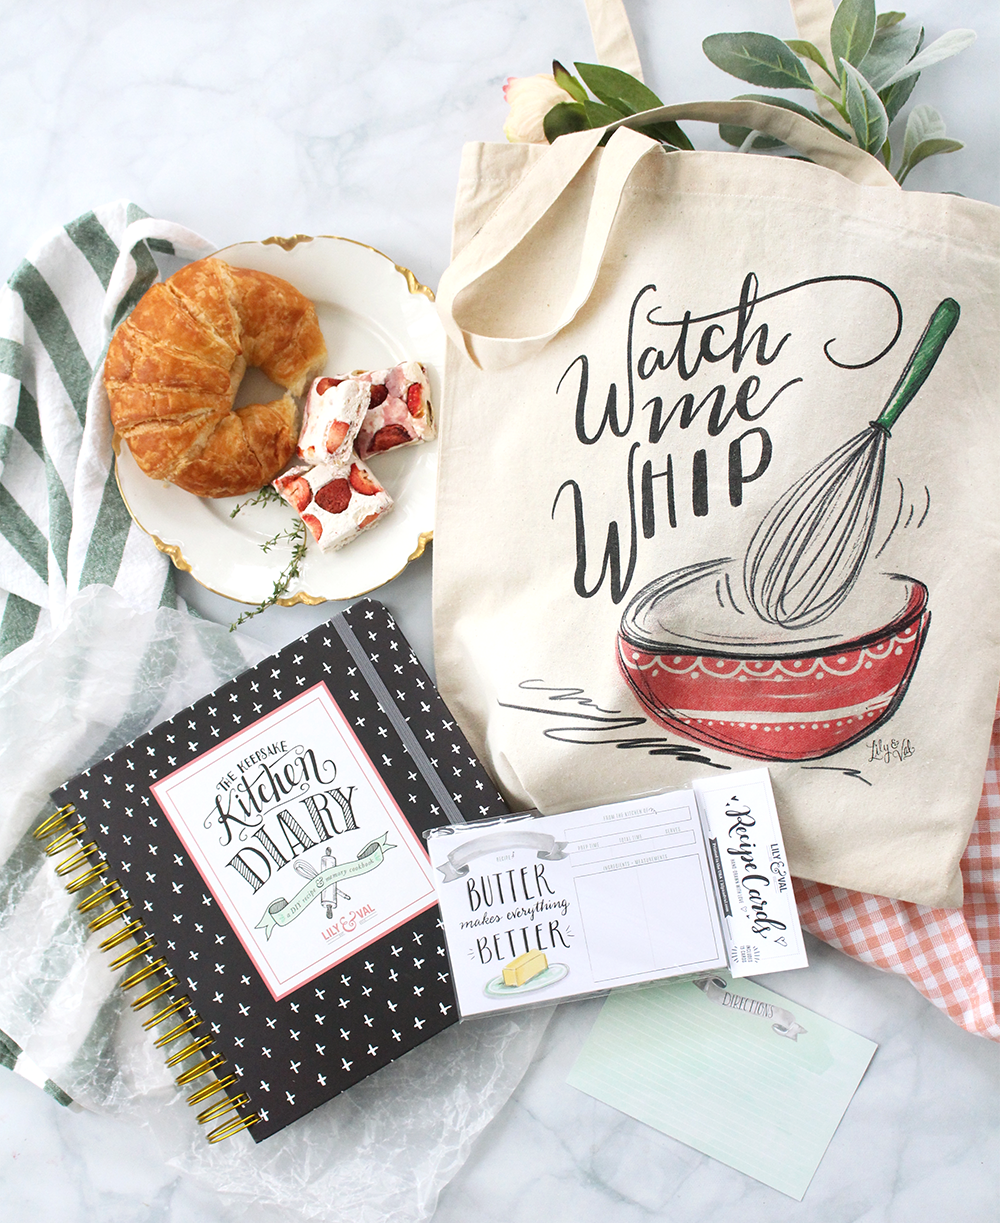 3 of our favorites for a special price! Save 20% off our Baker's Bundle! Includes the best-selling Keepsake Kitchen Diary, Watch Me Whip Tote, and Butter Makes Everything better loose recipe cards!